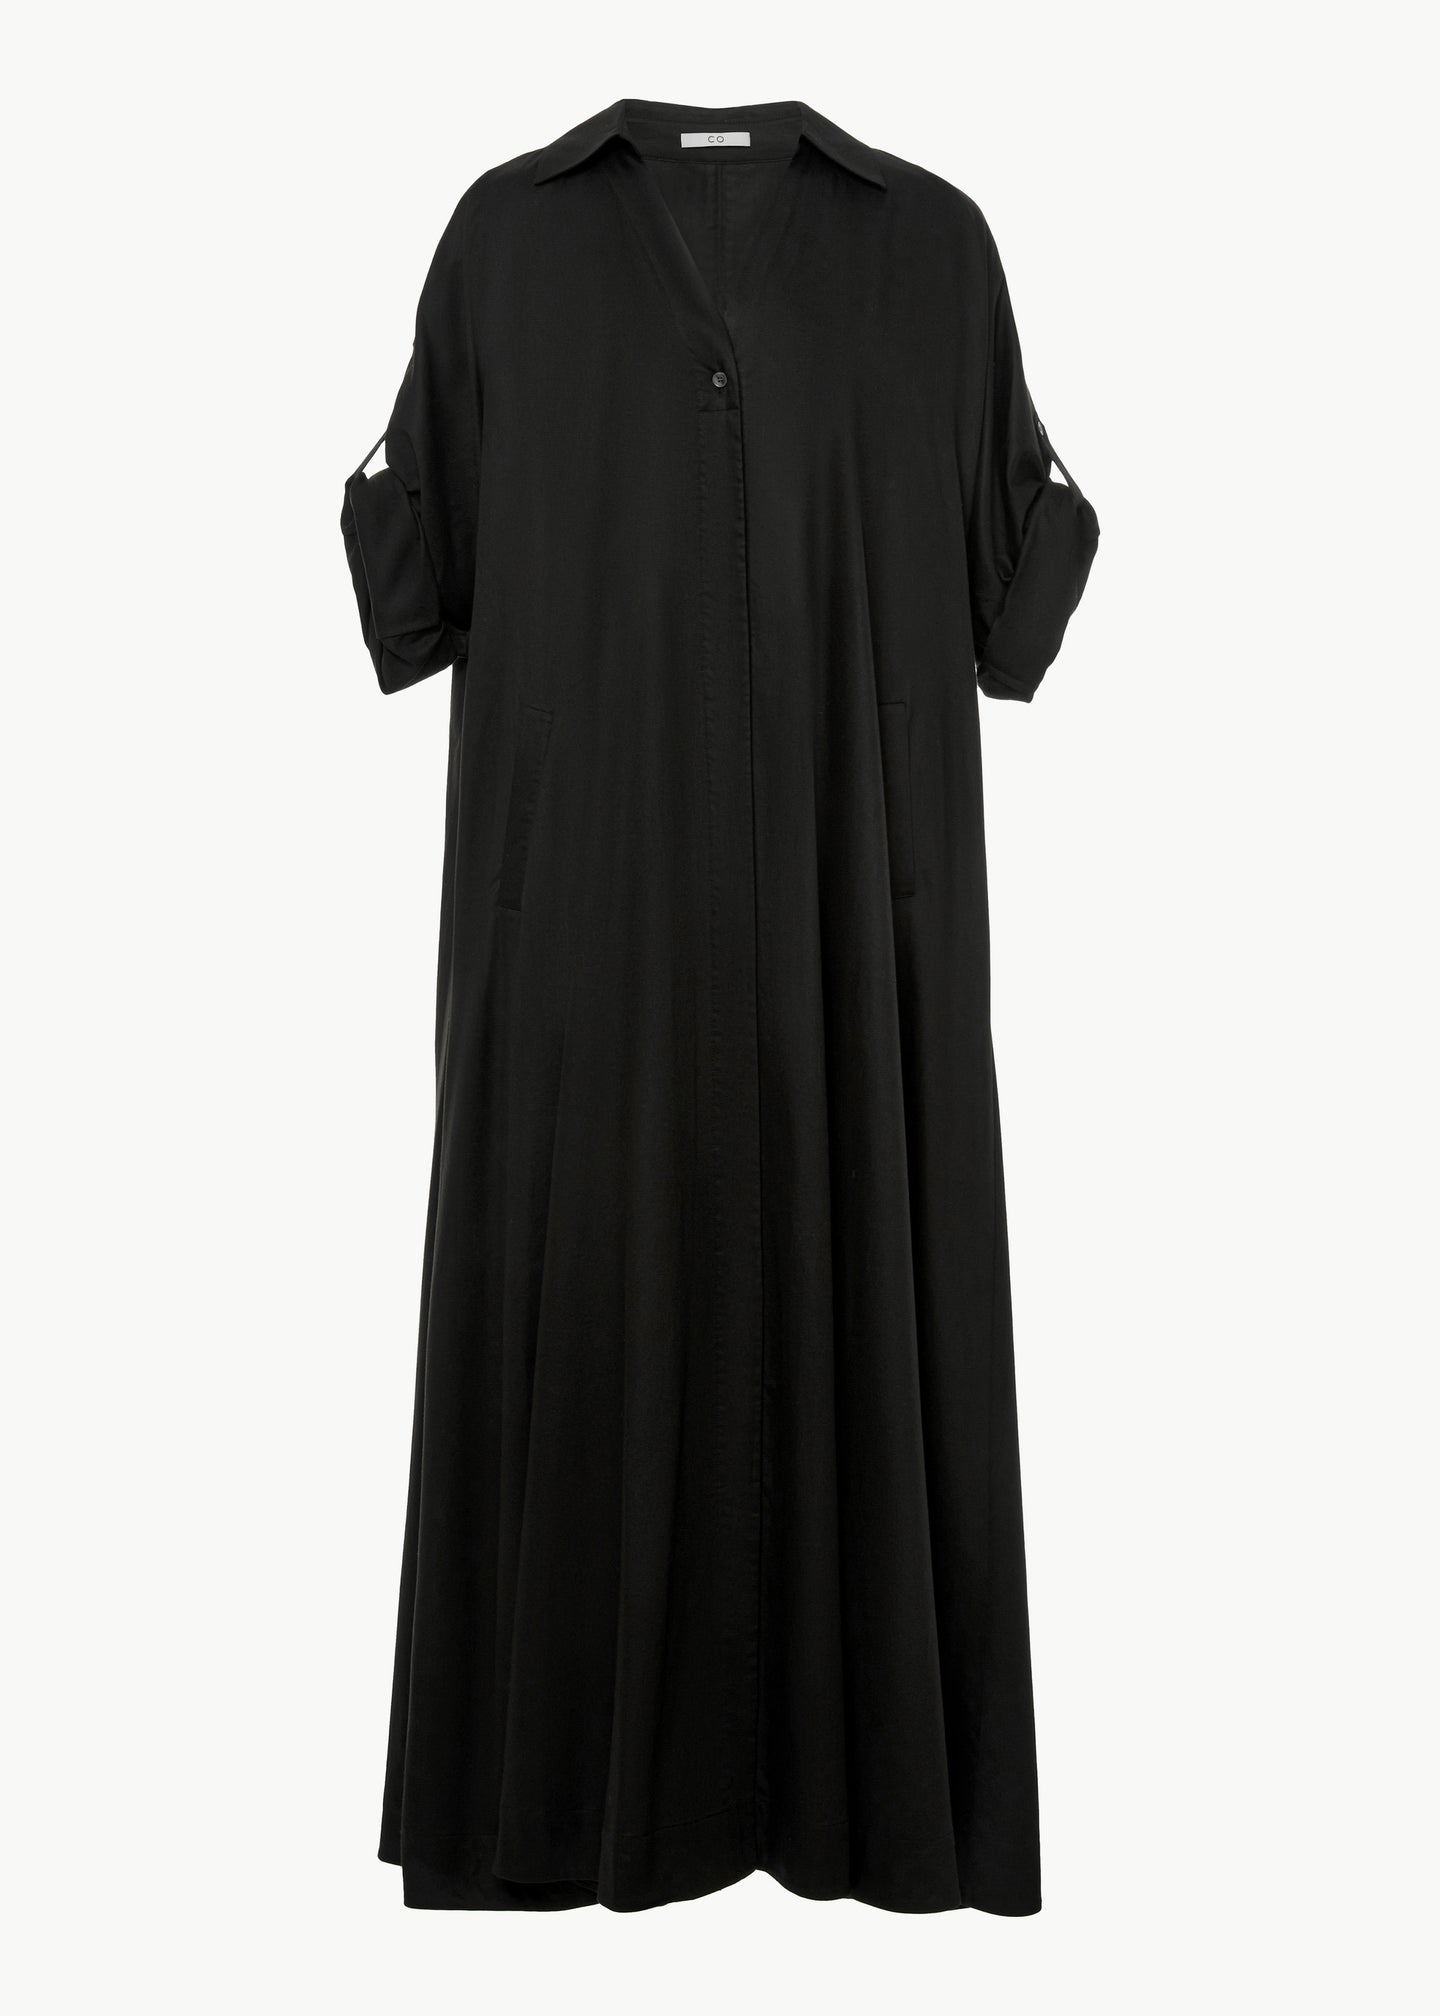 Rolled Sleeve Dress in Japanese Cotton - Black - CO